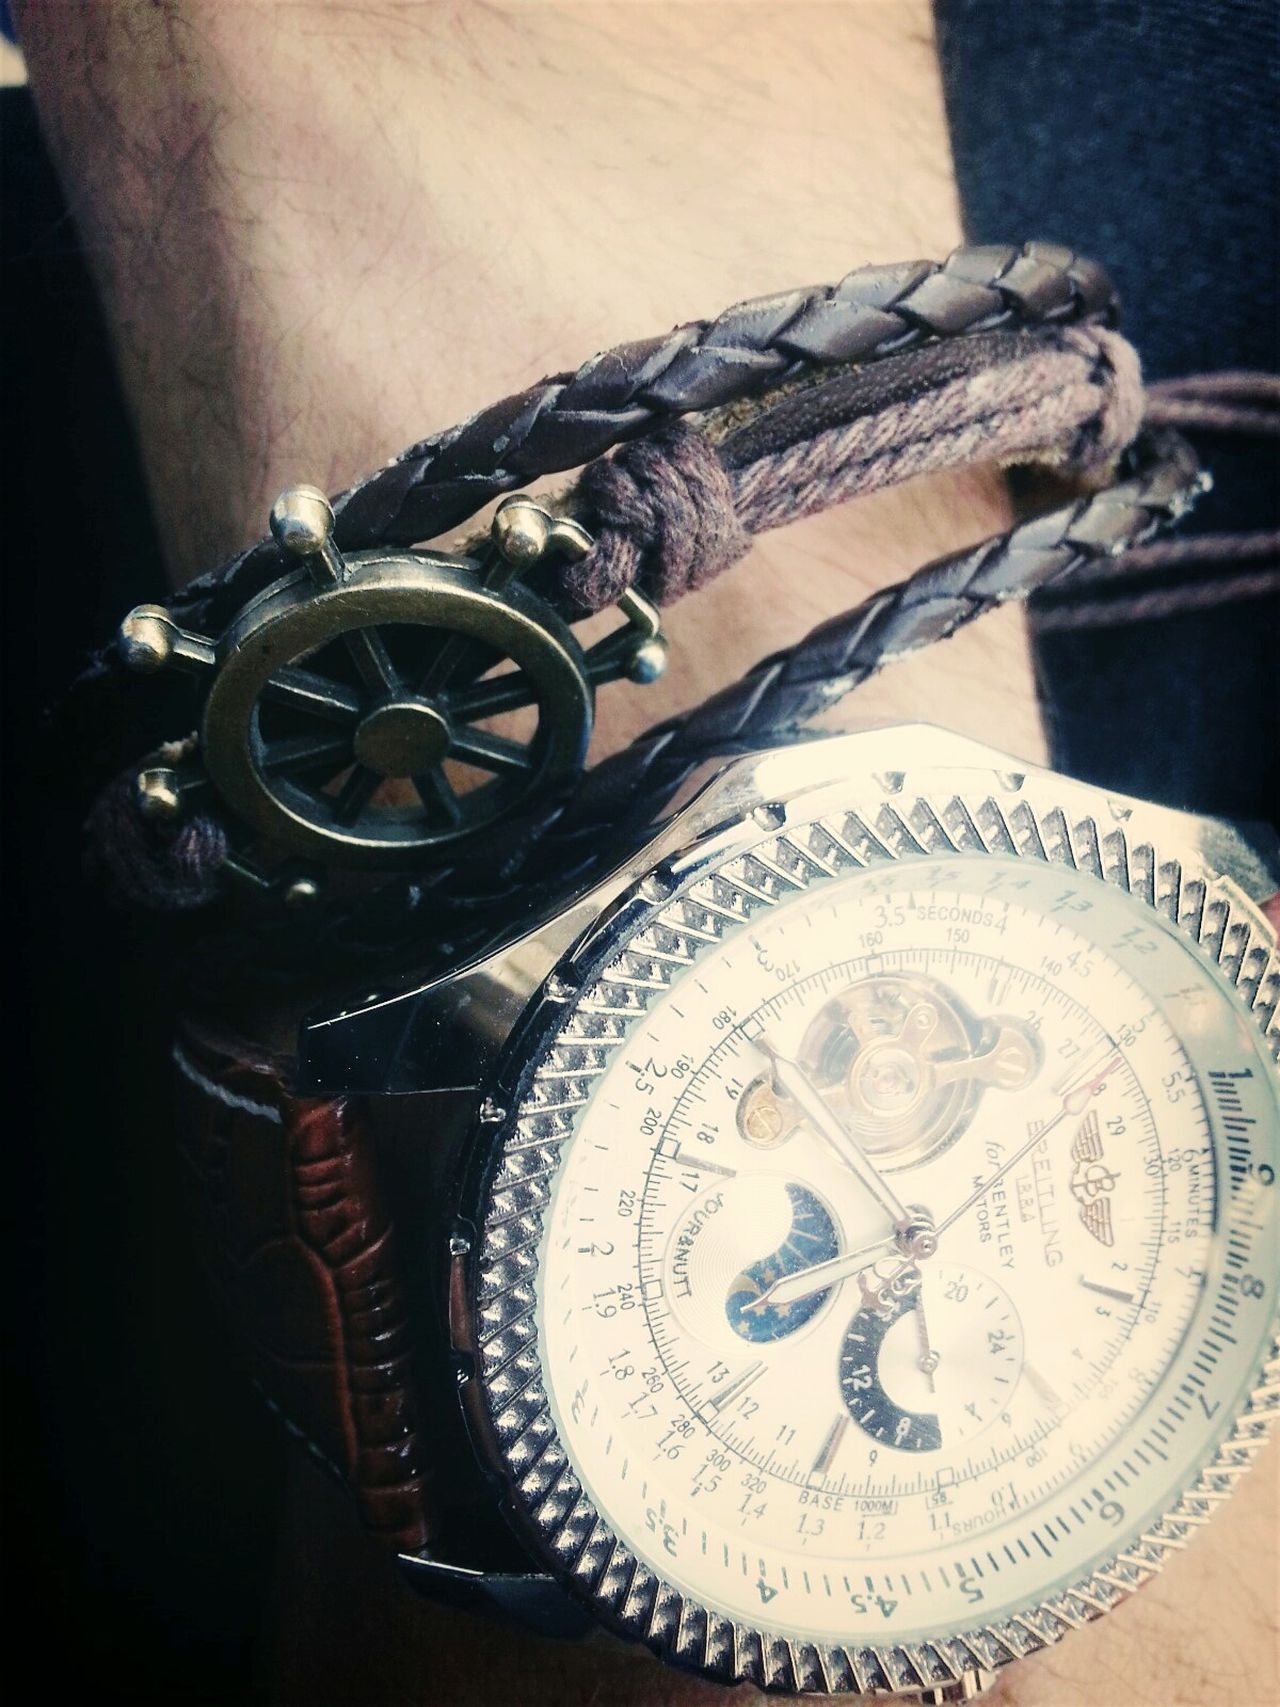 Simplicity ...Clock Old-fashioned Clock Face Breitling Gear Time Fashion First Eyeem Photo